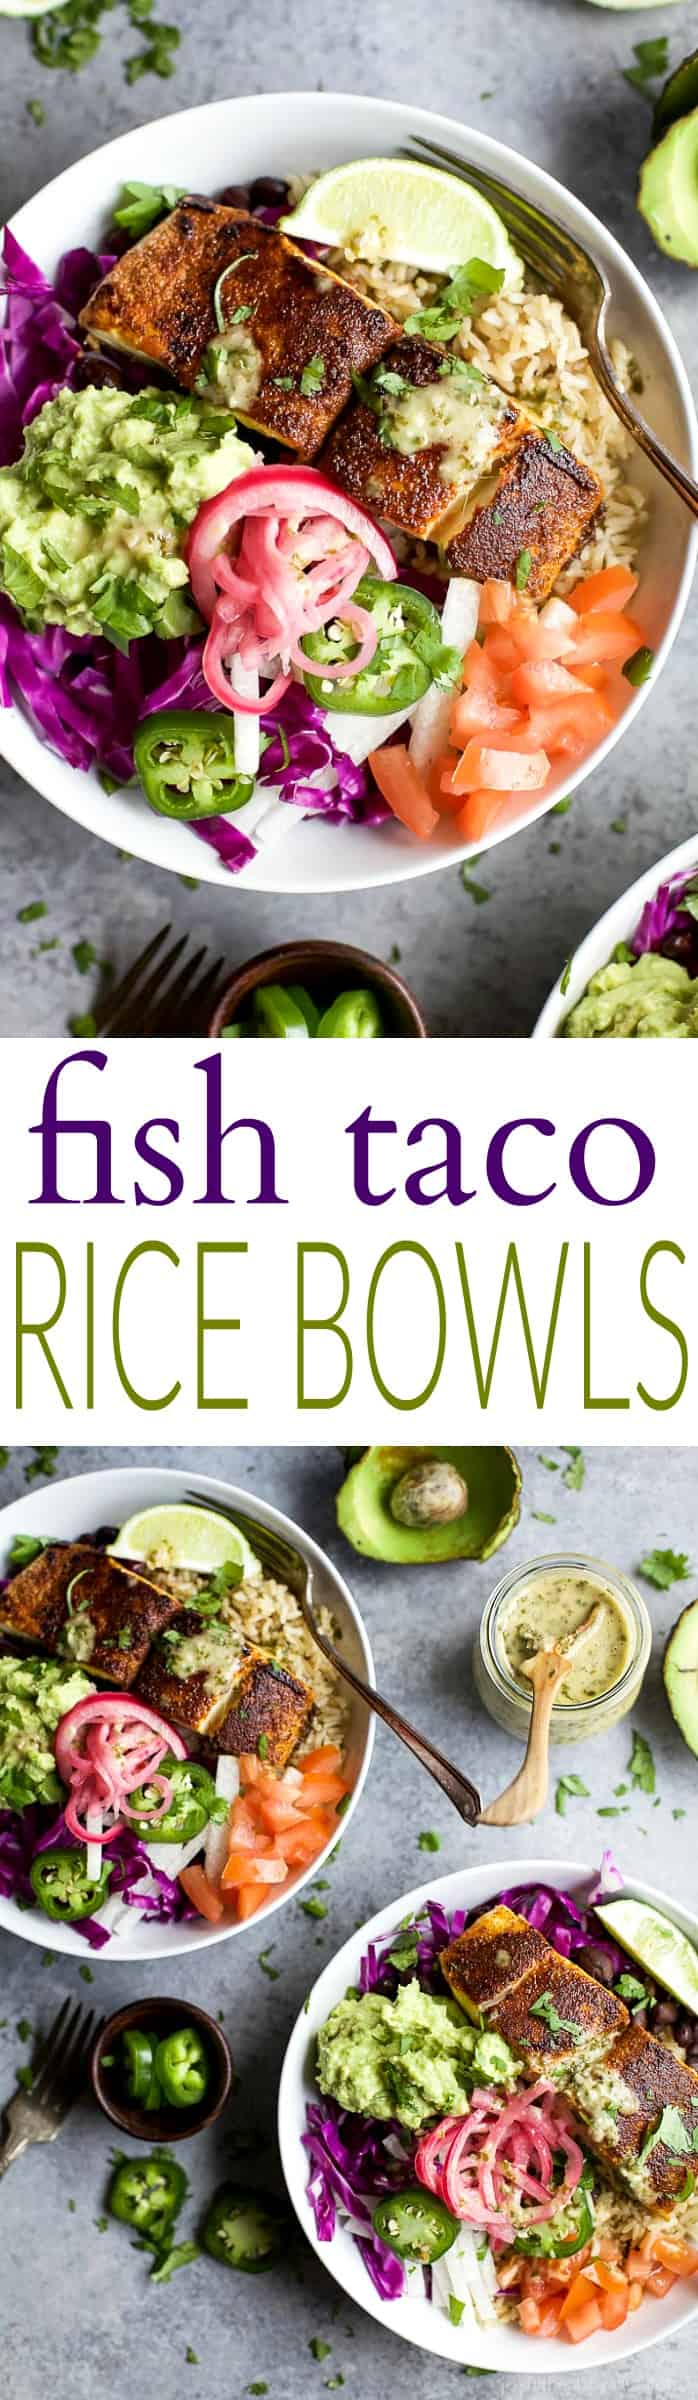 FISH TACO RICE BOWLS with avocado & pickled onions, topped with a Cilantro Lime Dressing! The perfect 30 minute meal to satisfy even the pickiest of eaters!